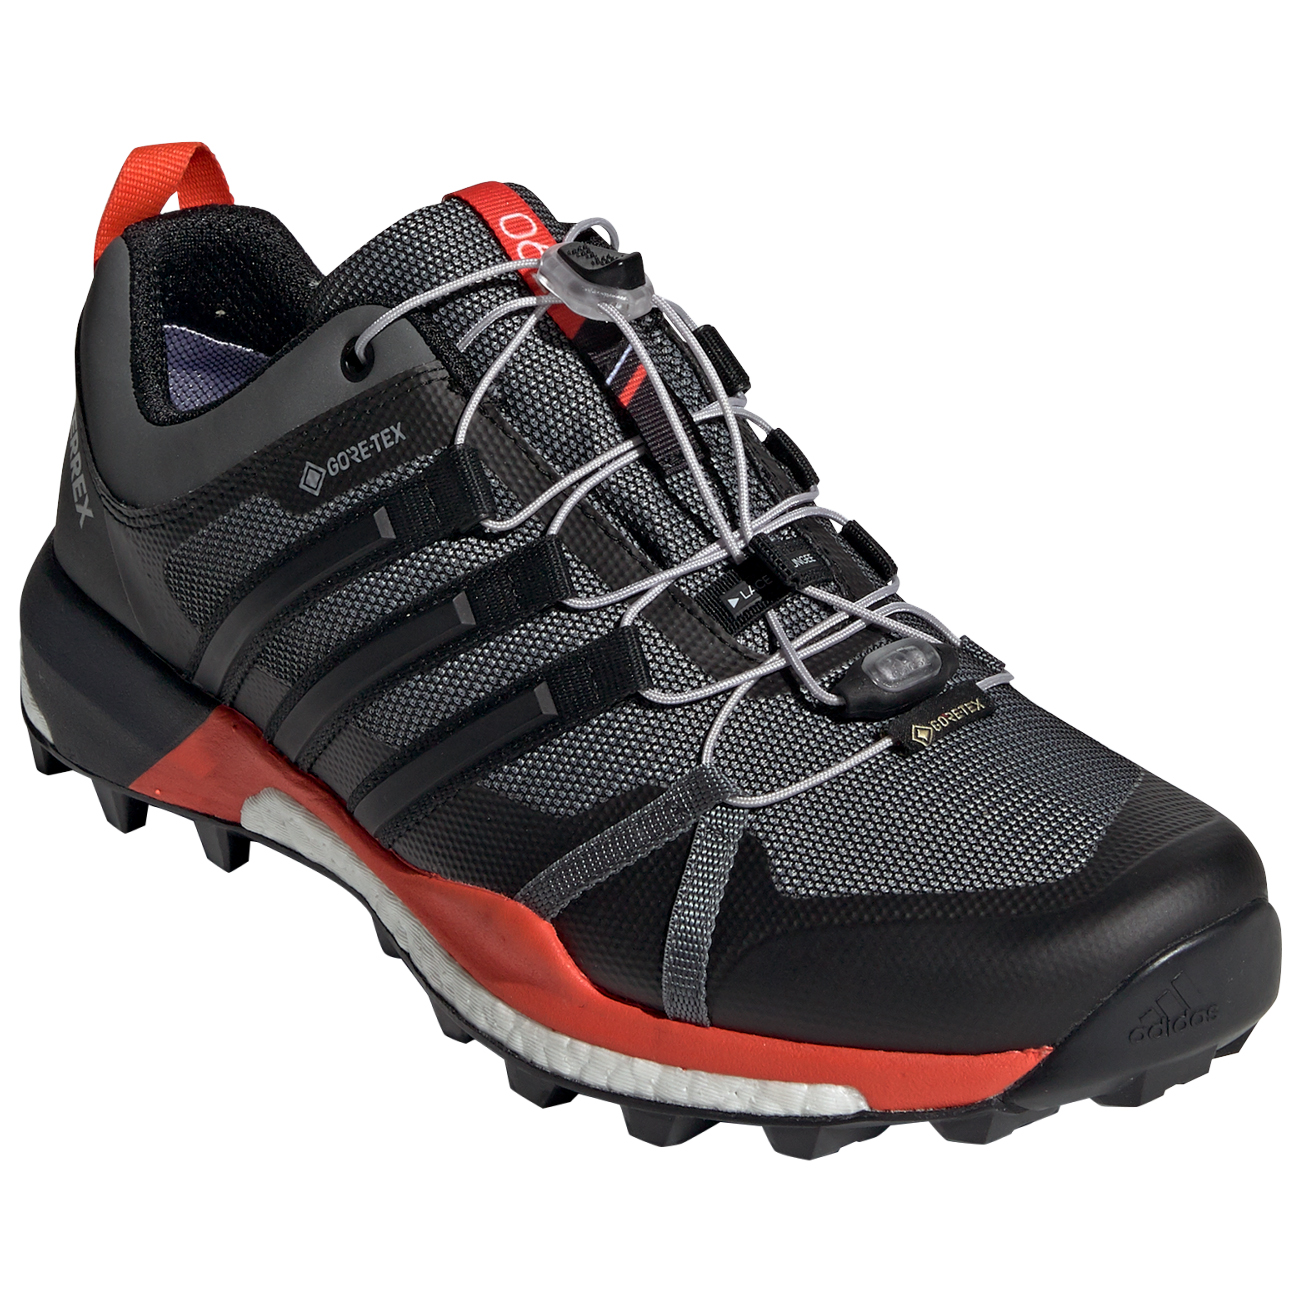 0e0560c5b93a Adidas Terrex Skychaser GTX - Approach shoes Men s